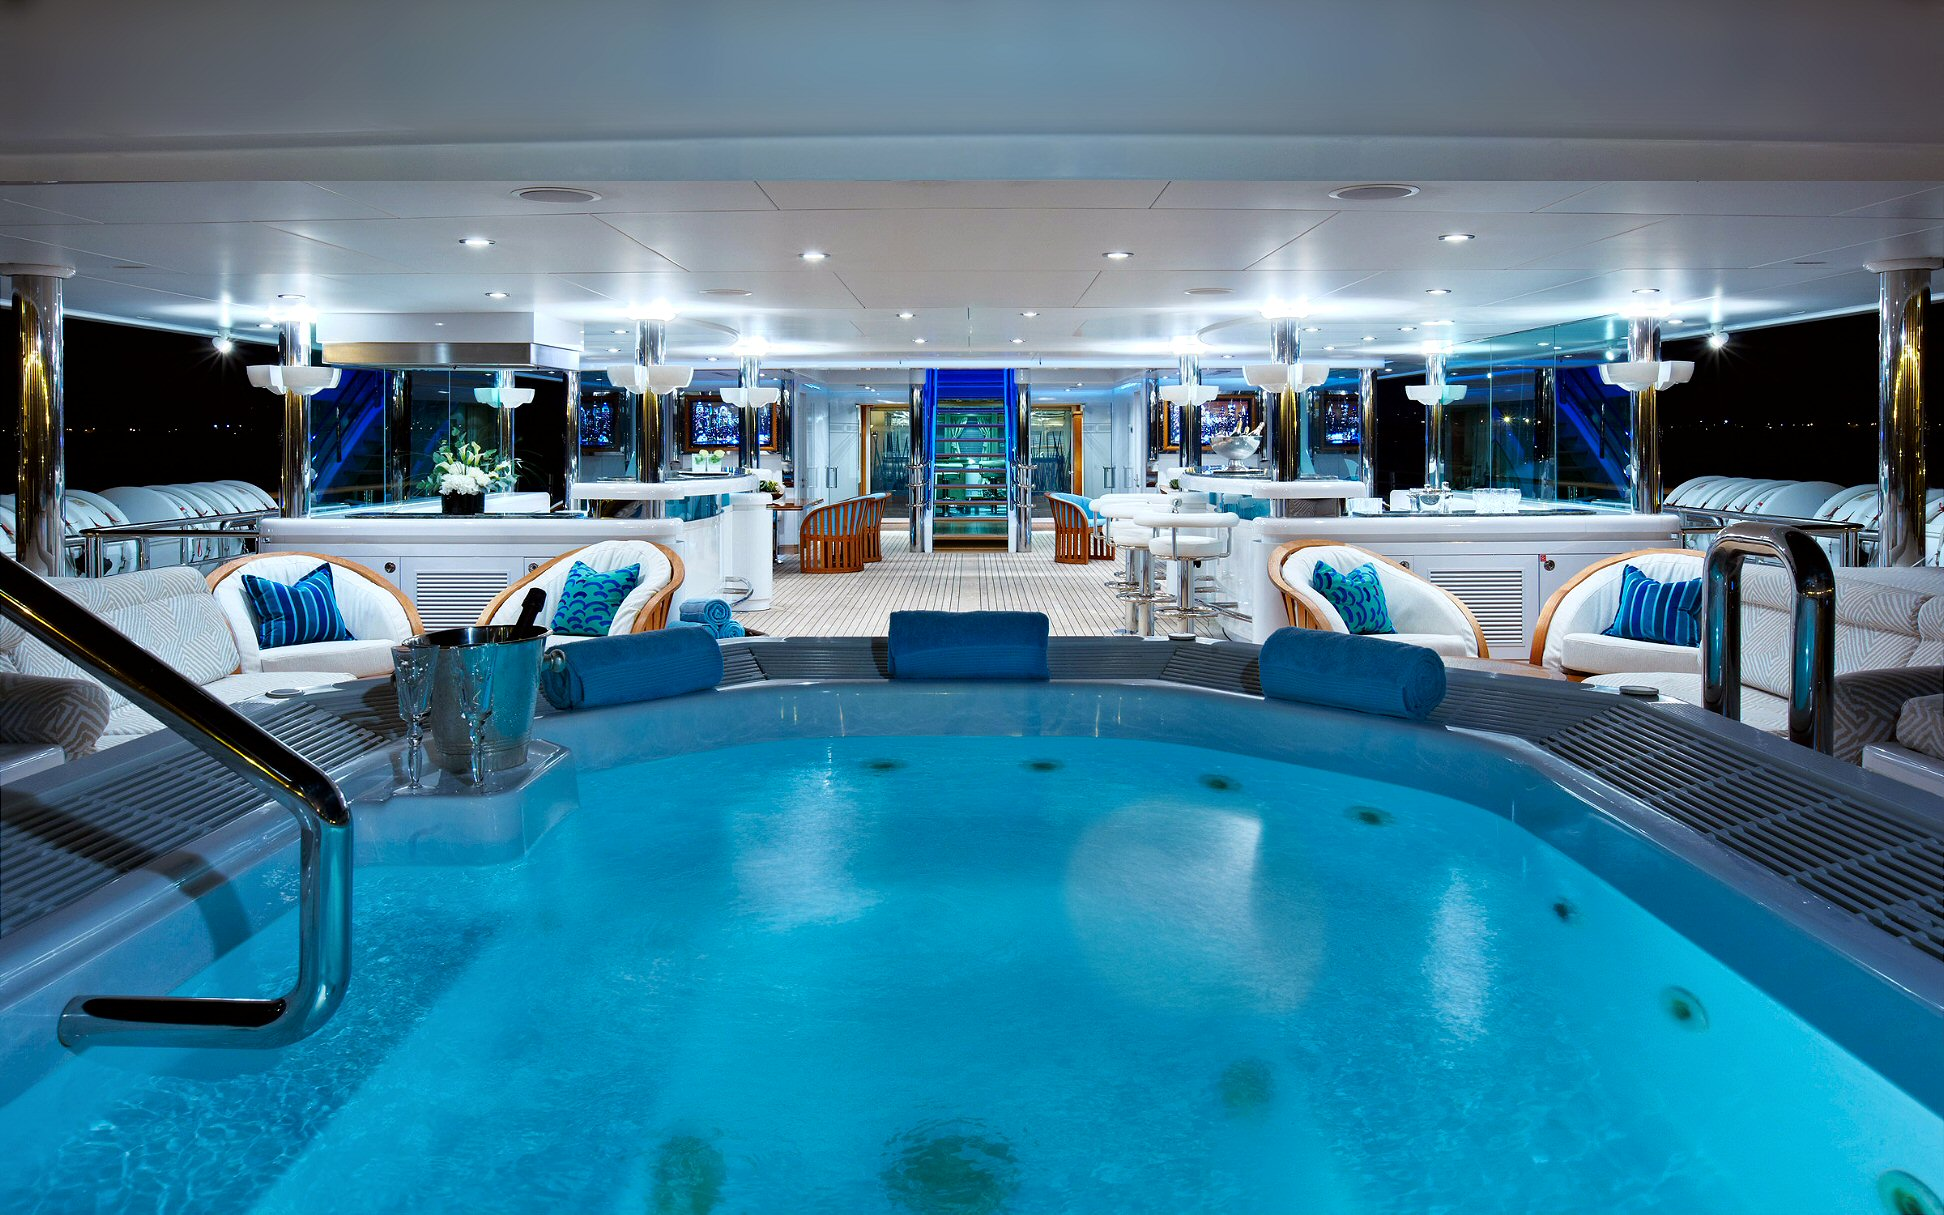 COOL BLUE 01 Yachtinterior 10october2012wednesday